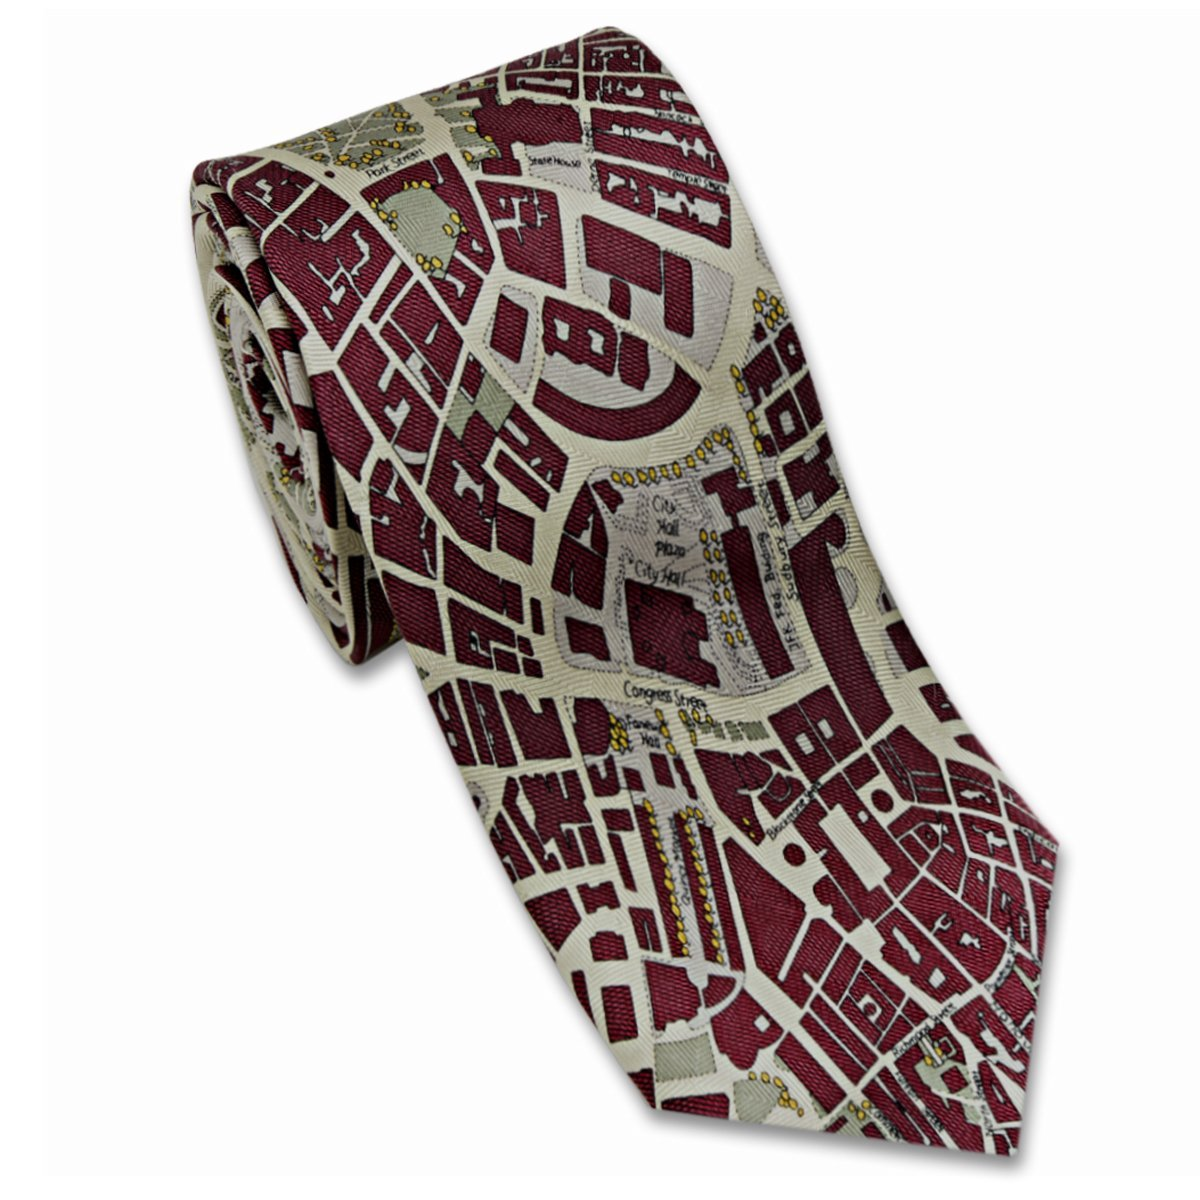 Josh Bach Boston Map Tie